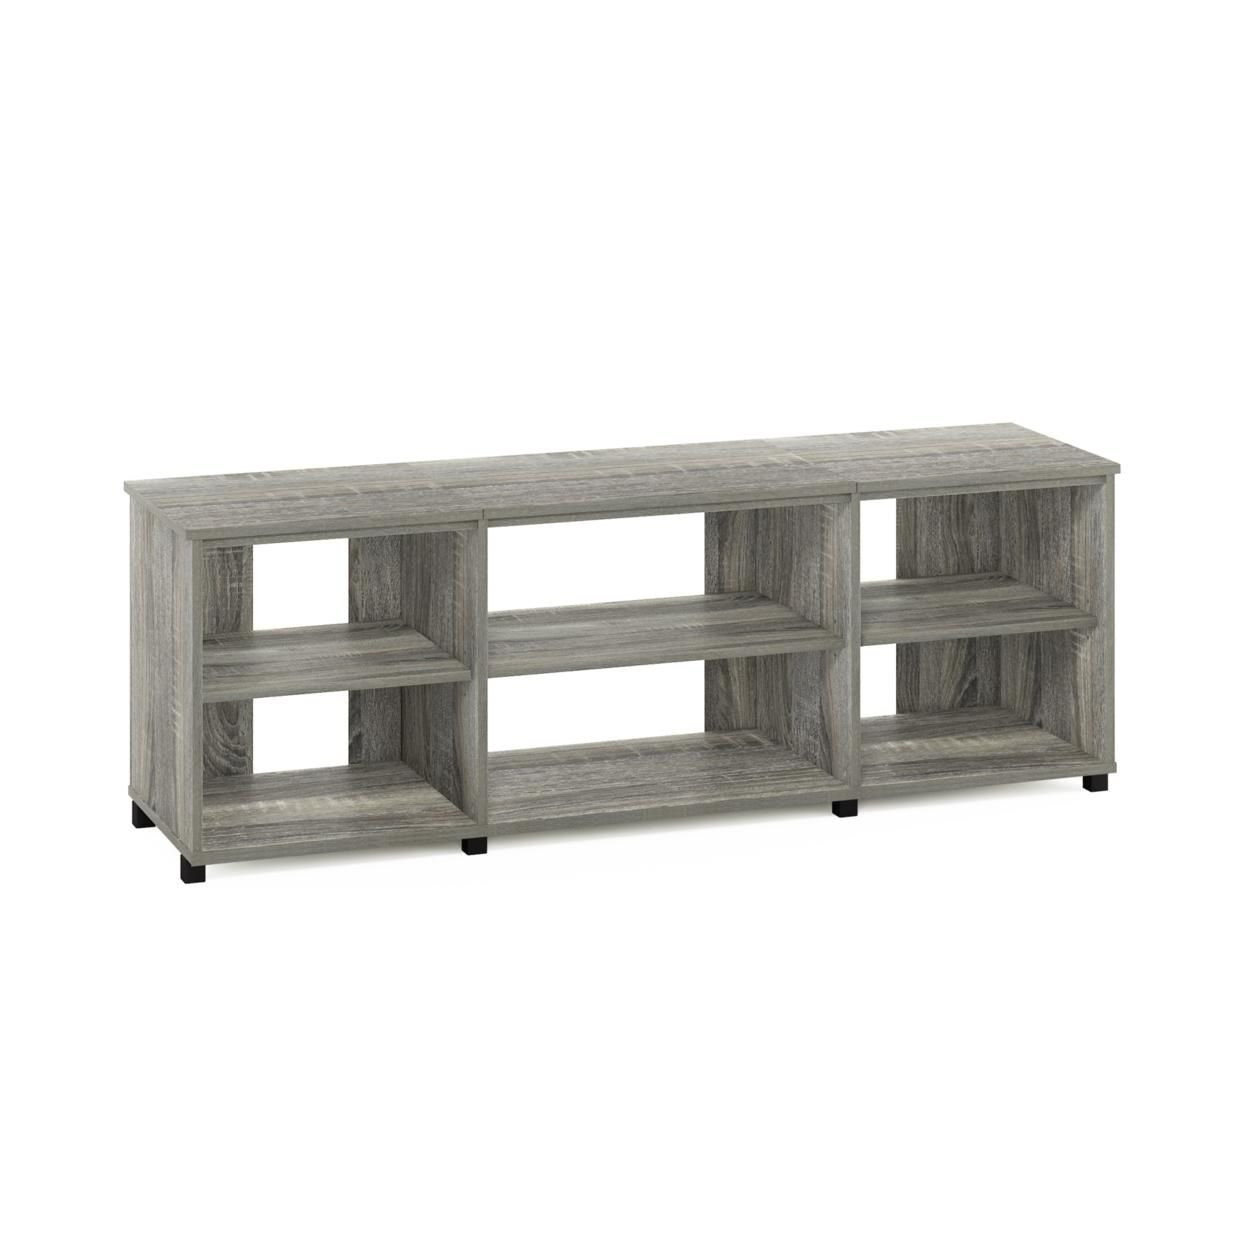 Furinno Montale TV Stand with Shelves for TV up to 65 Inch, French Oak Grey